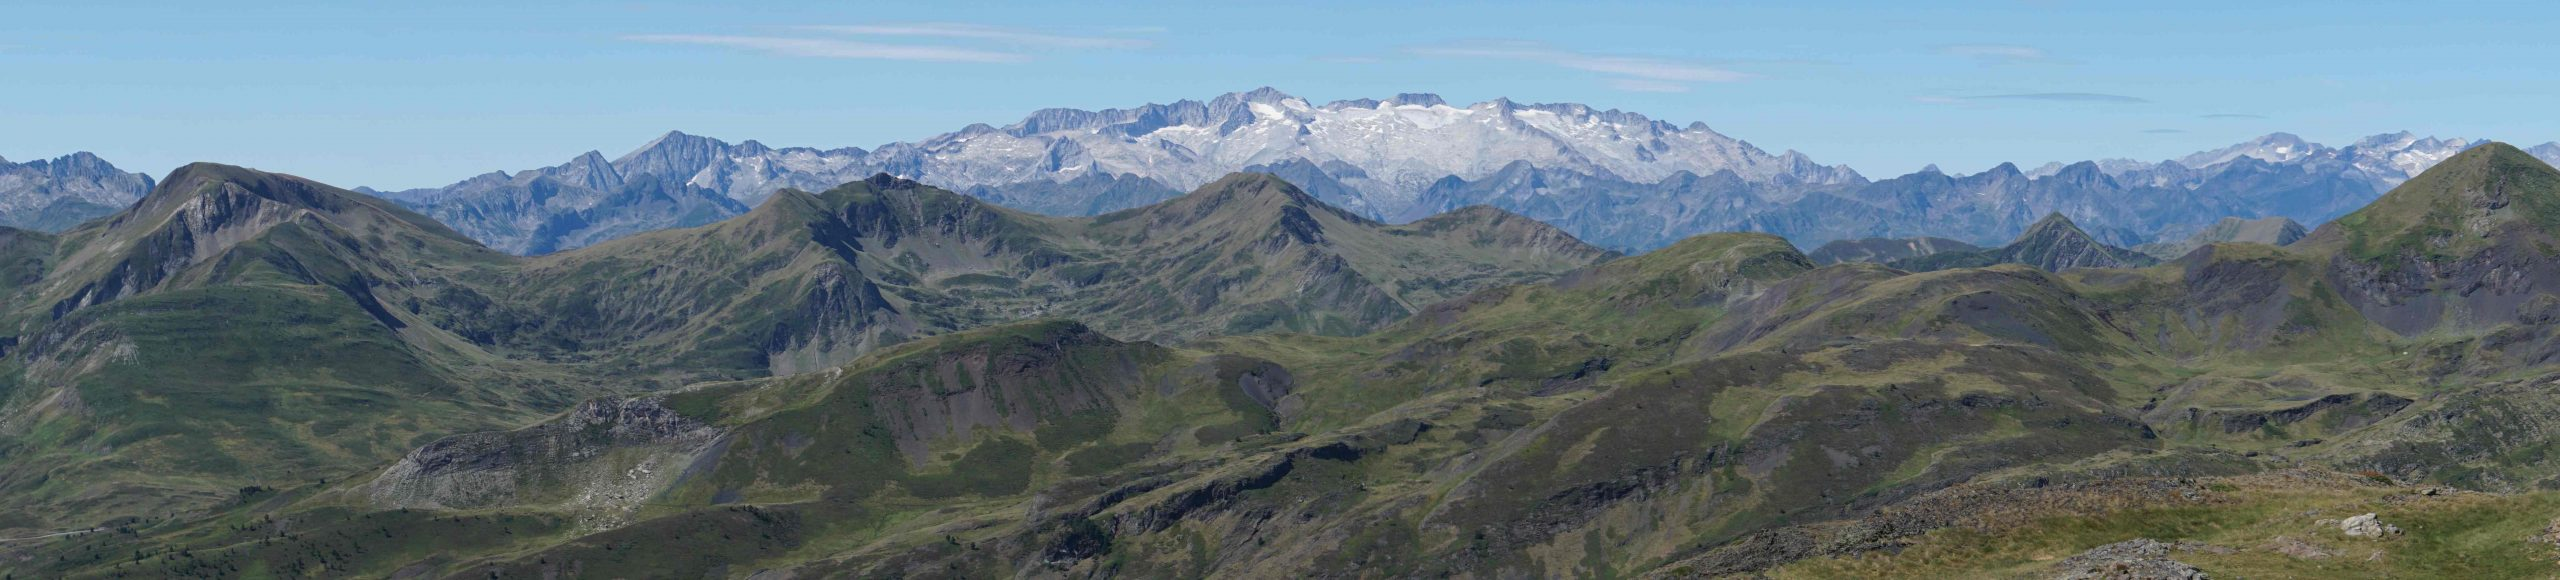 Panorama photo of large snowy mountain range in the Pyrenees